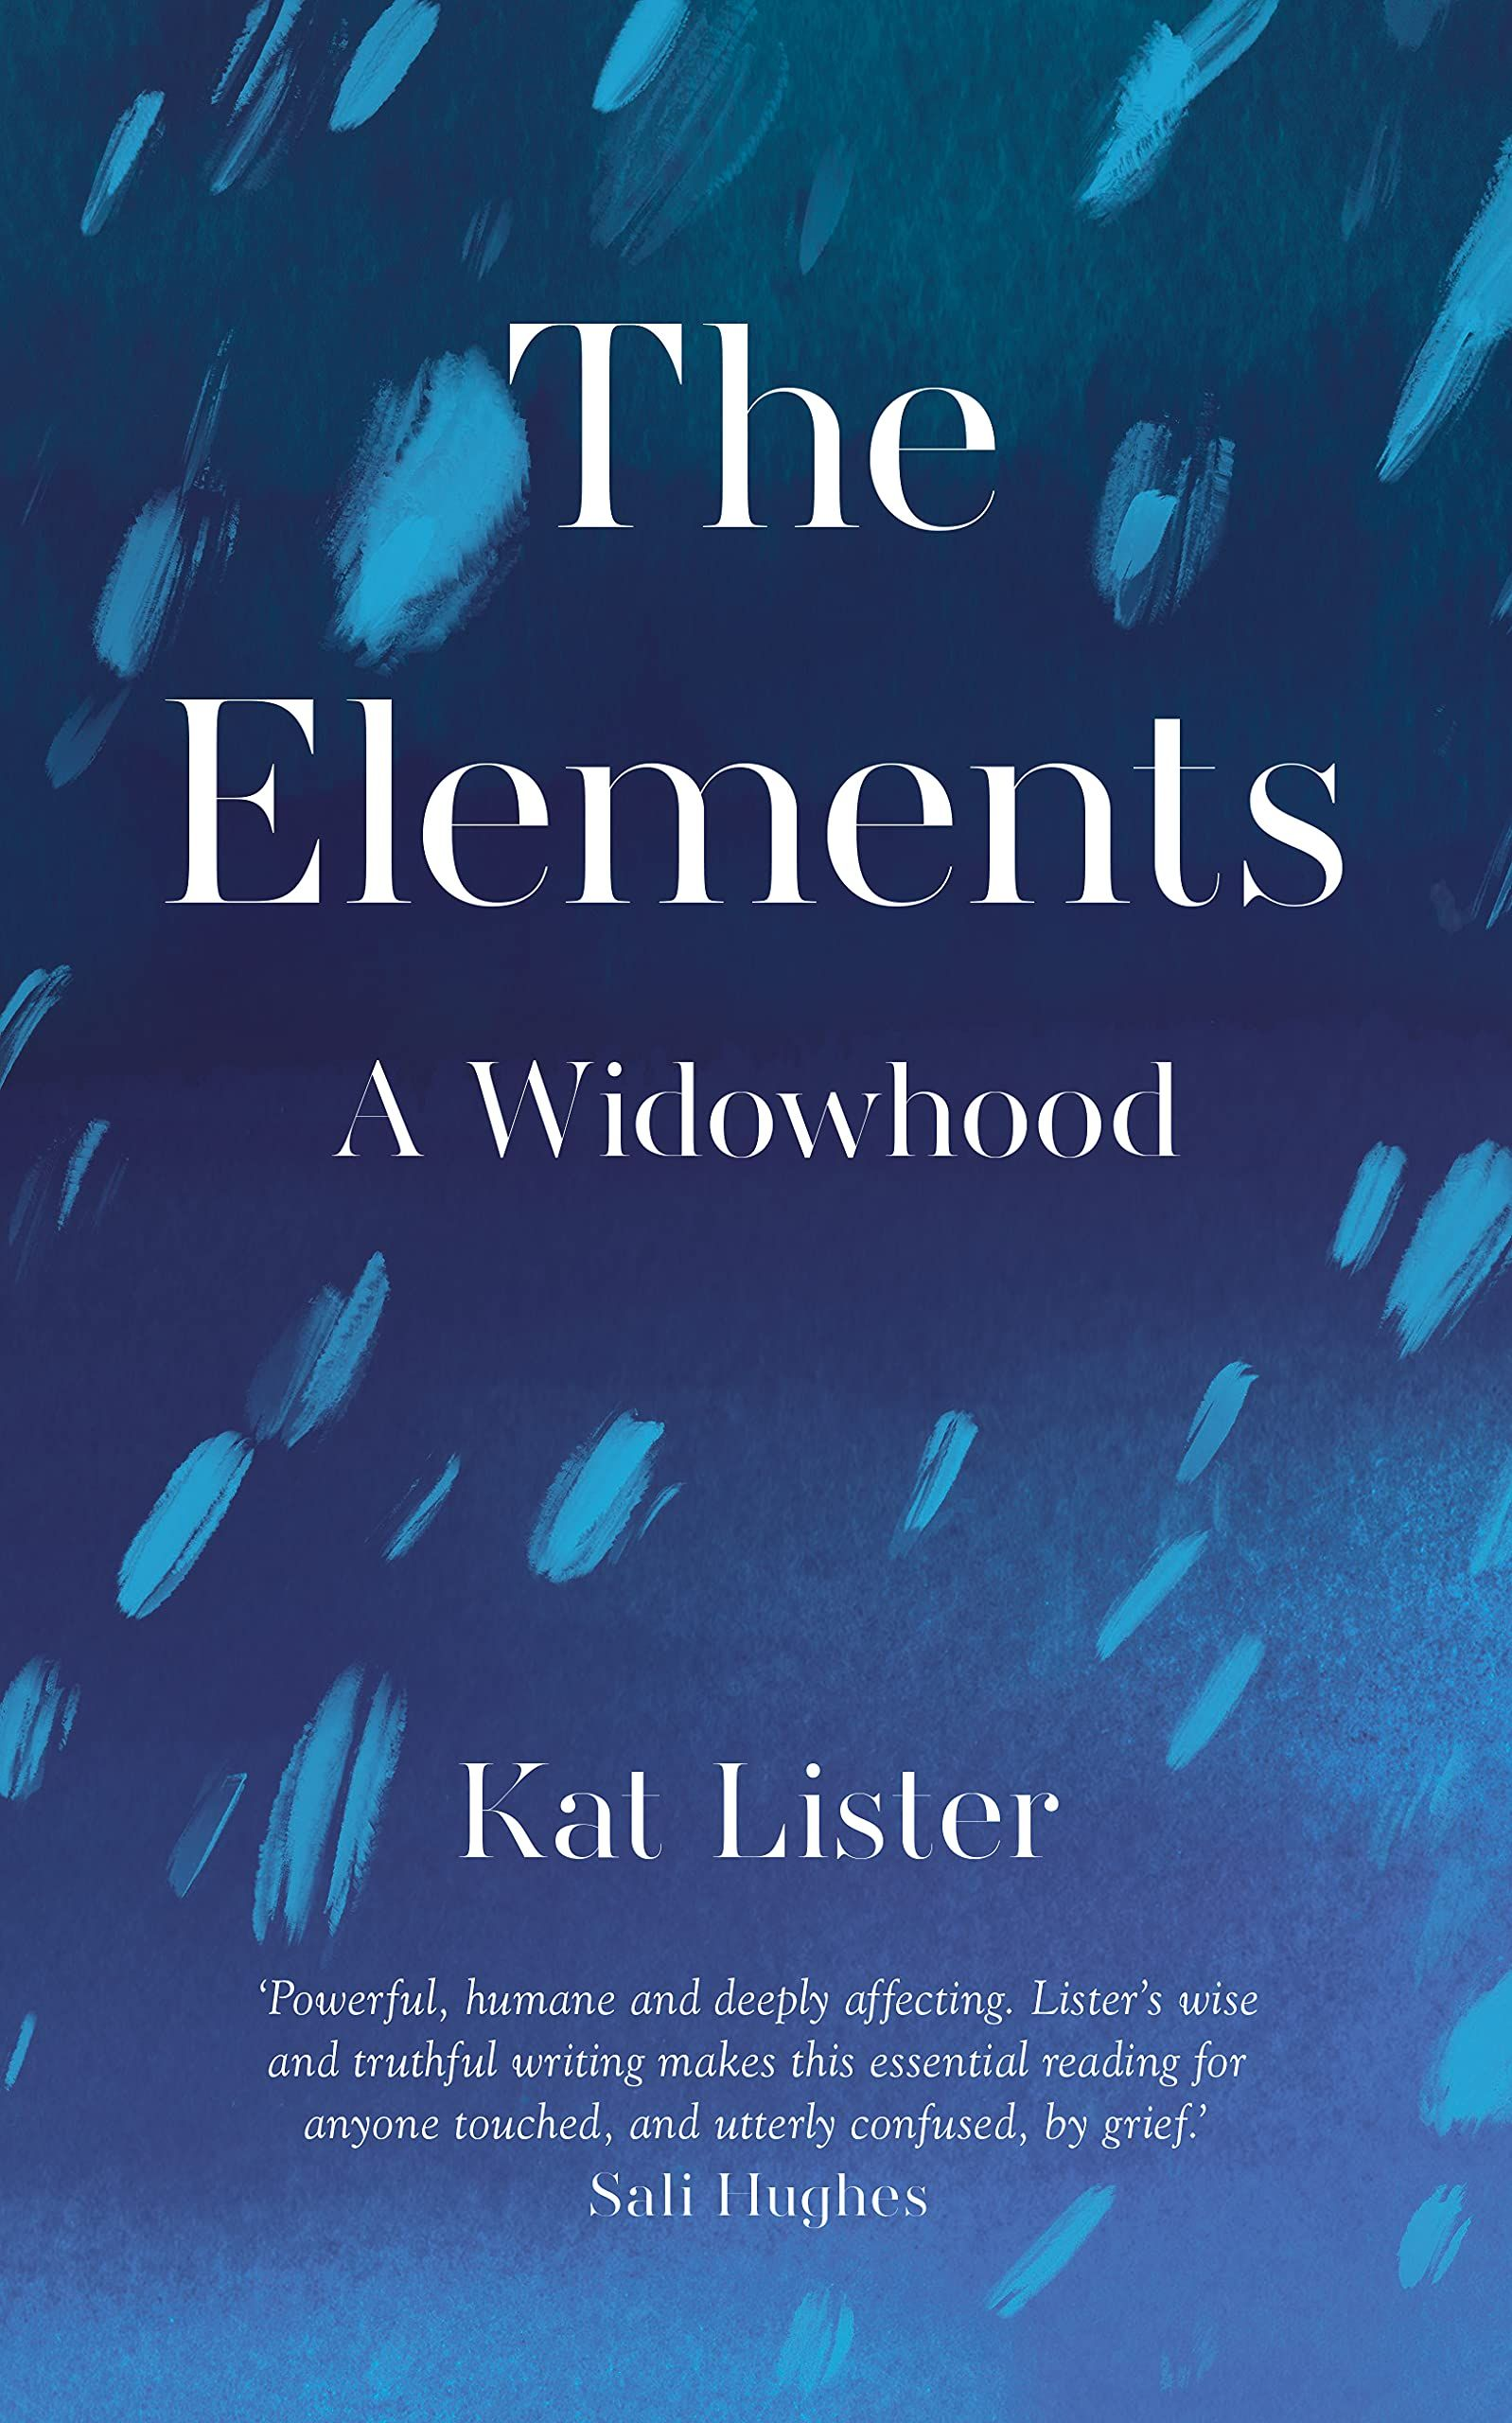 The Elements : A Widowhood